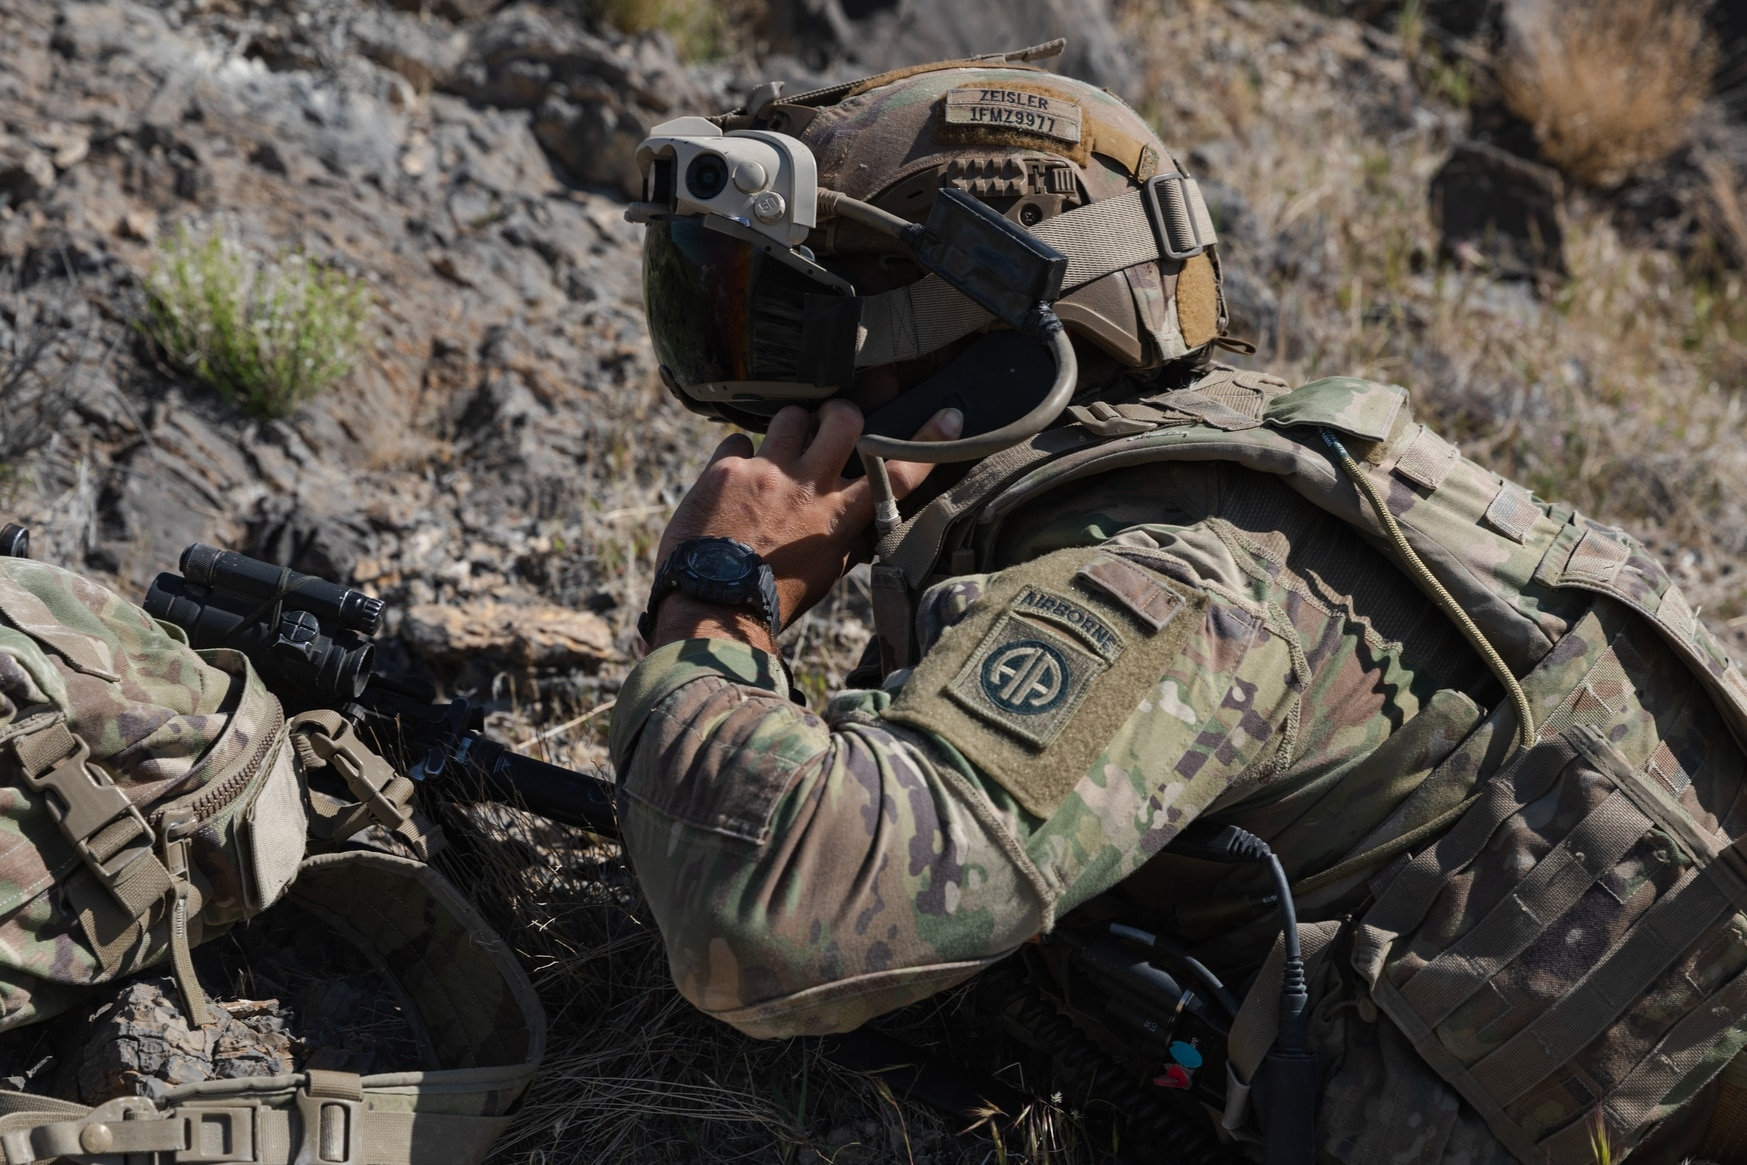 A dismounted soldier stays connected and receives unprecedented situational awareness through his Integrated Visual Augmentation System goggles at Edge 21. (Courtesy of the U.S. Army)